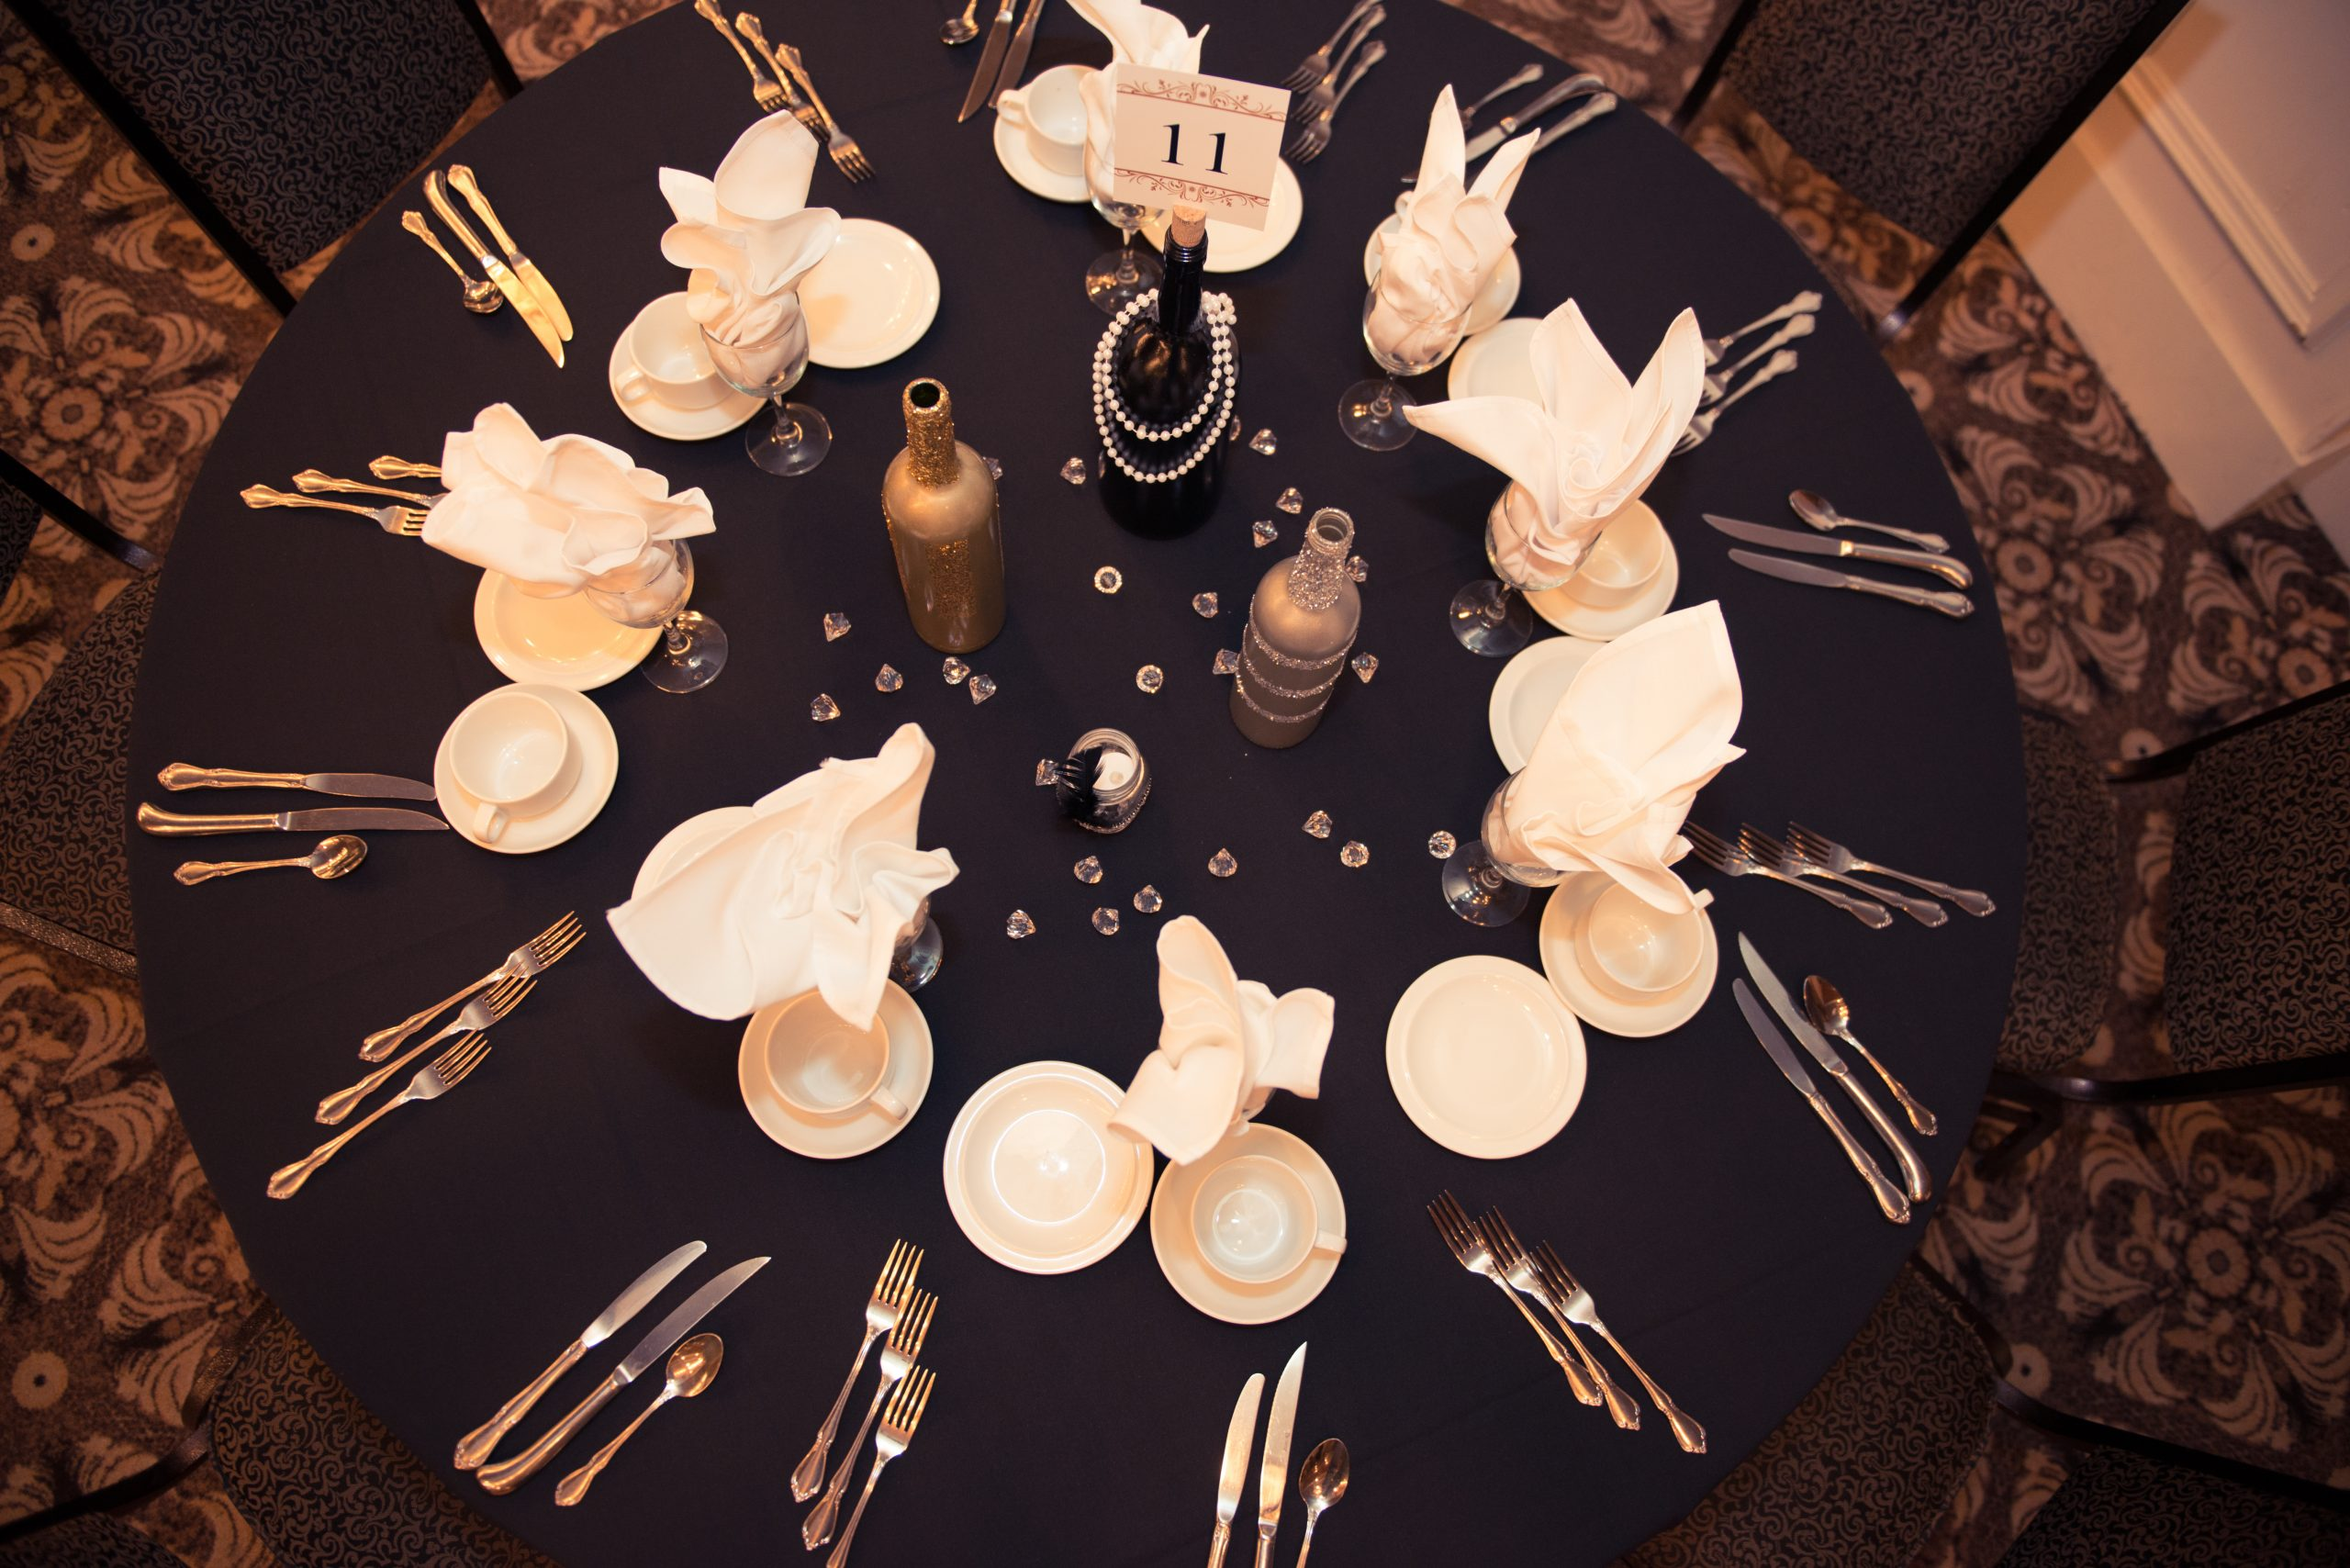 How to Recycle Reuse Regain Your Wedding Items